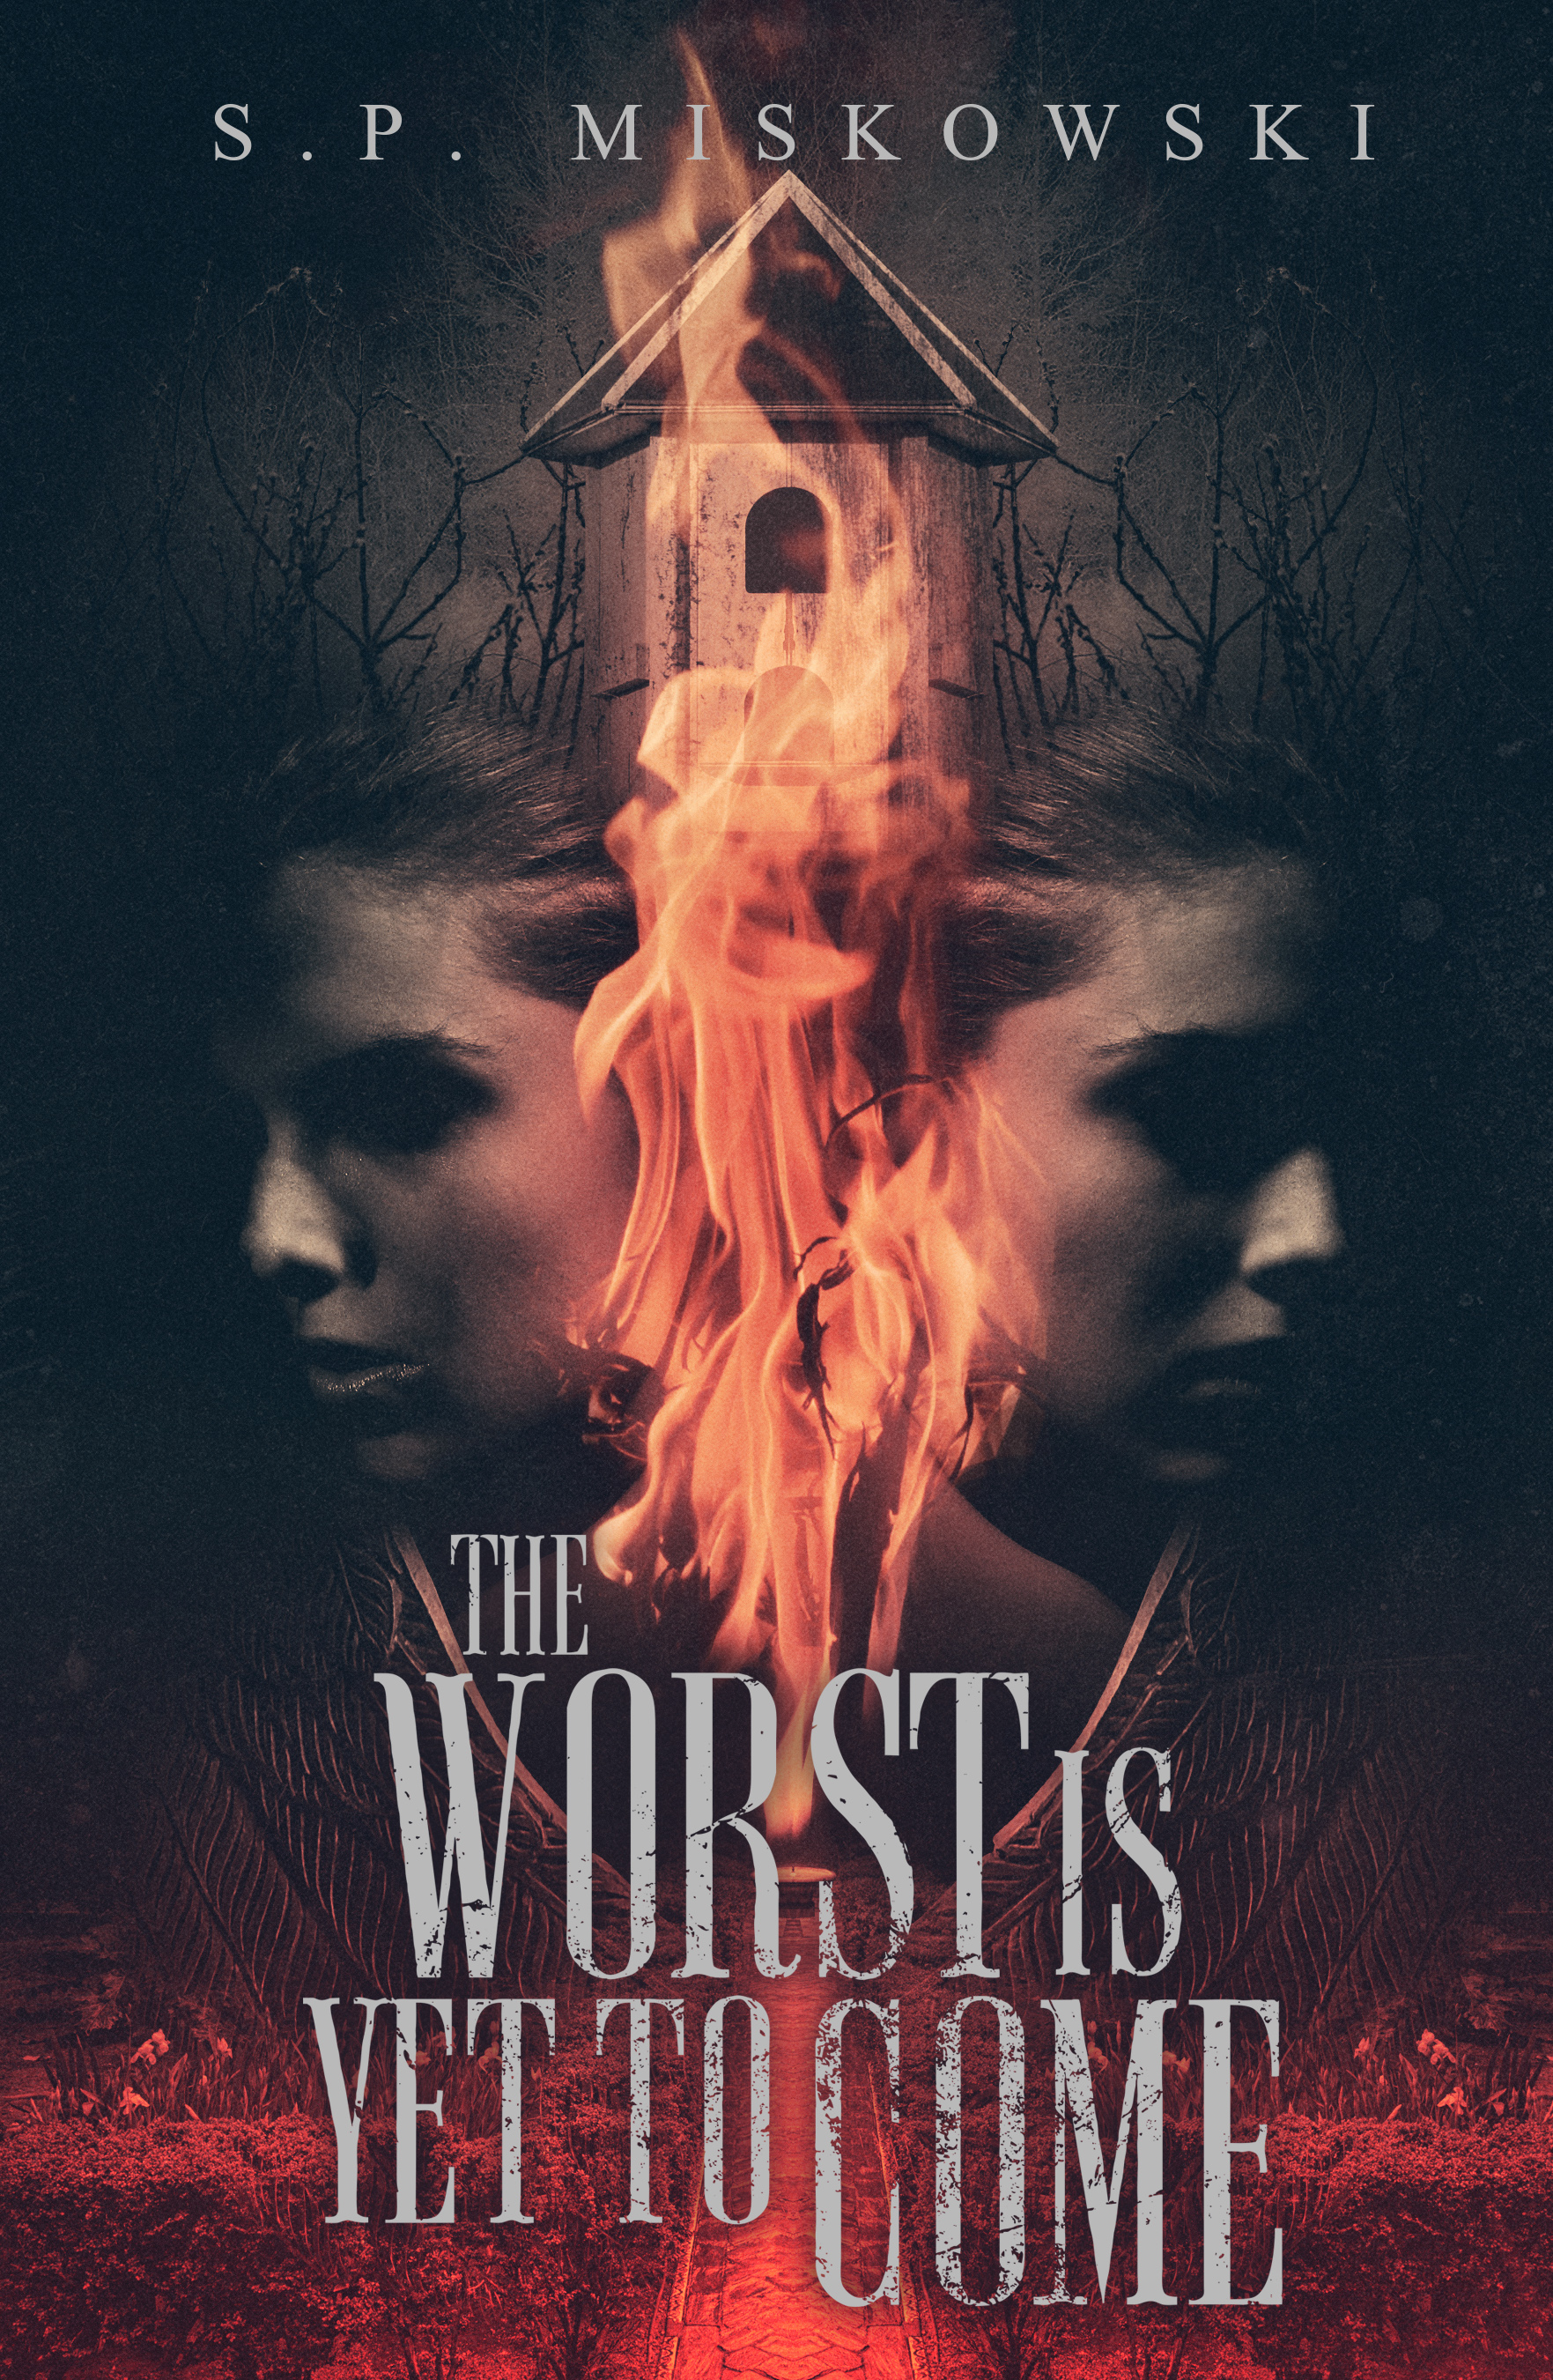 The Worst Is Yet To Come_S.P. Miskowski.jpg